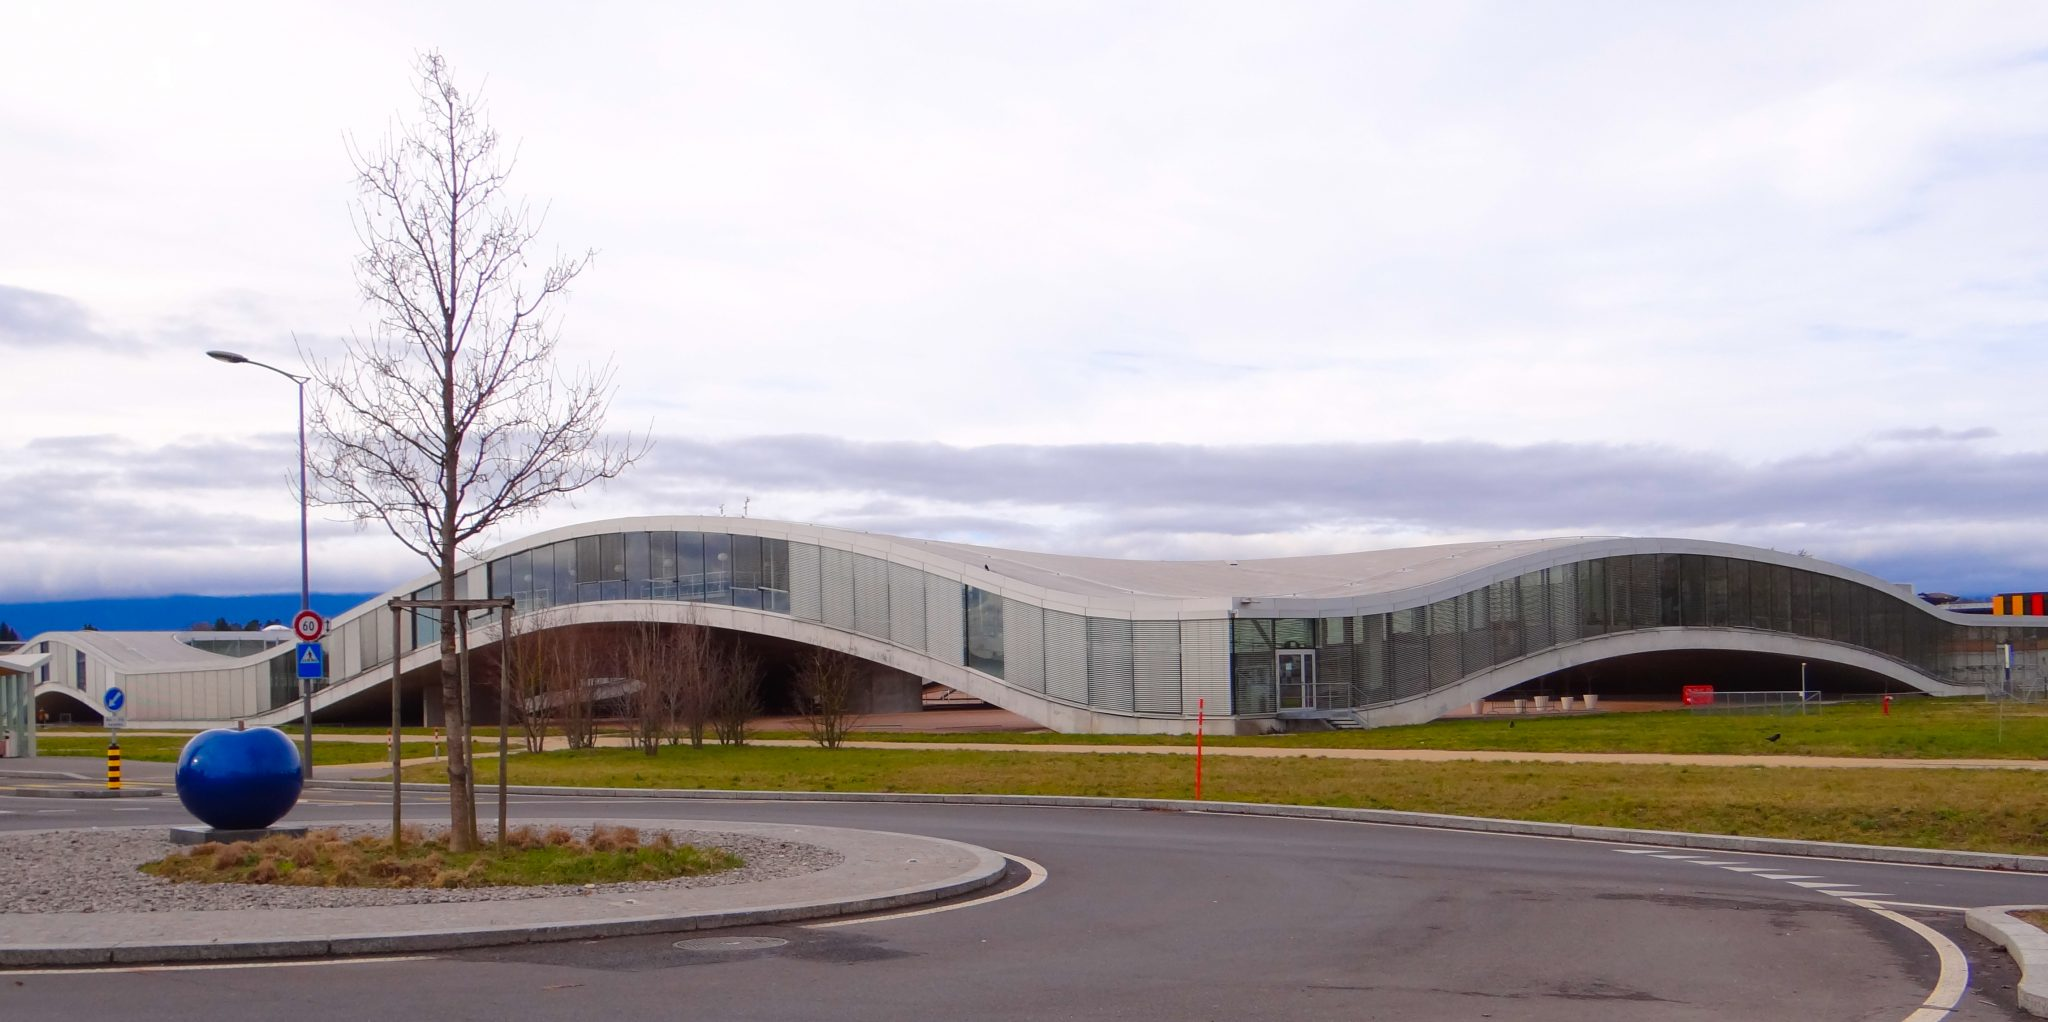 The EPFL library in Lausanne, Switzerland - A revolutionary architecture!